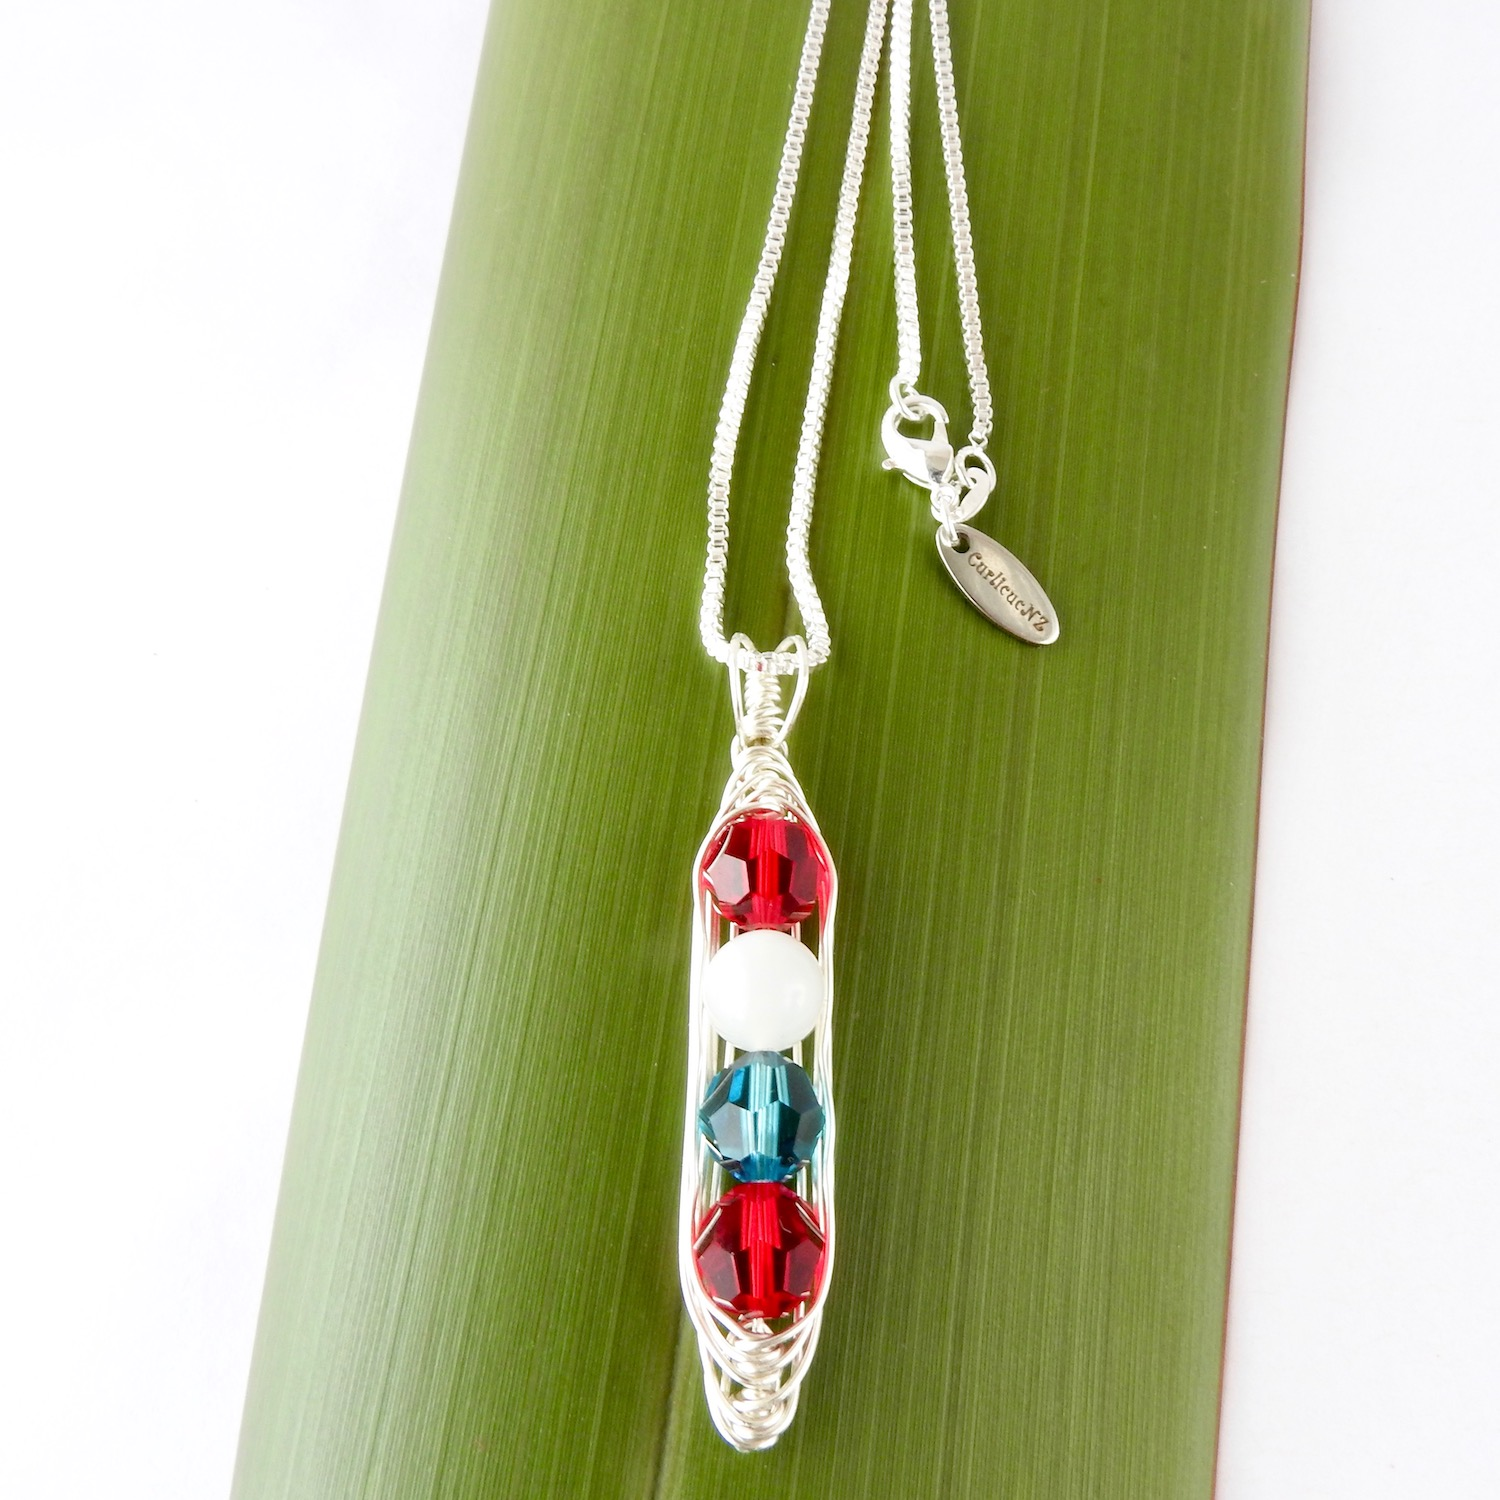 Beautiful Birthstone Gift for her_Pea Pod Necklace